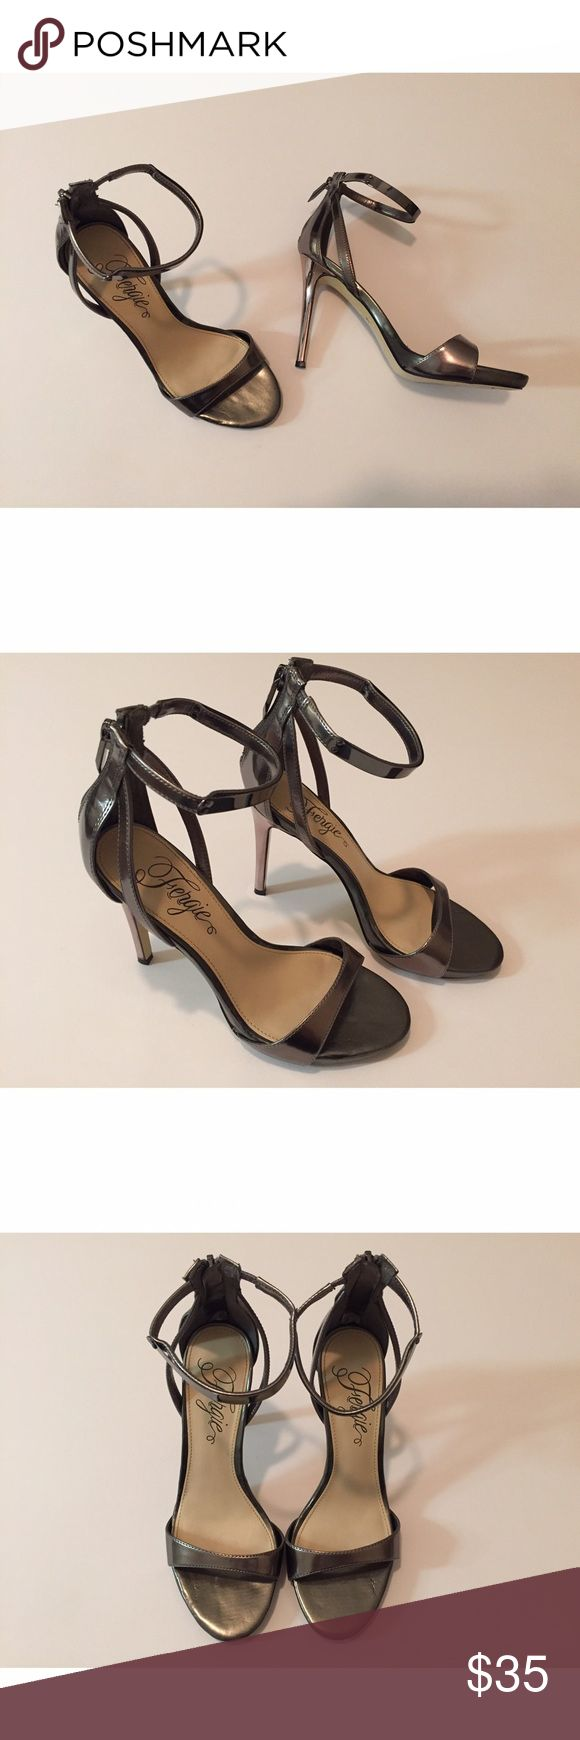 Fergie Silver/Pewter Simple Sandal Heels *Only worn once - in great condition* Fergie Shoes Heels